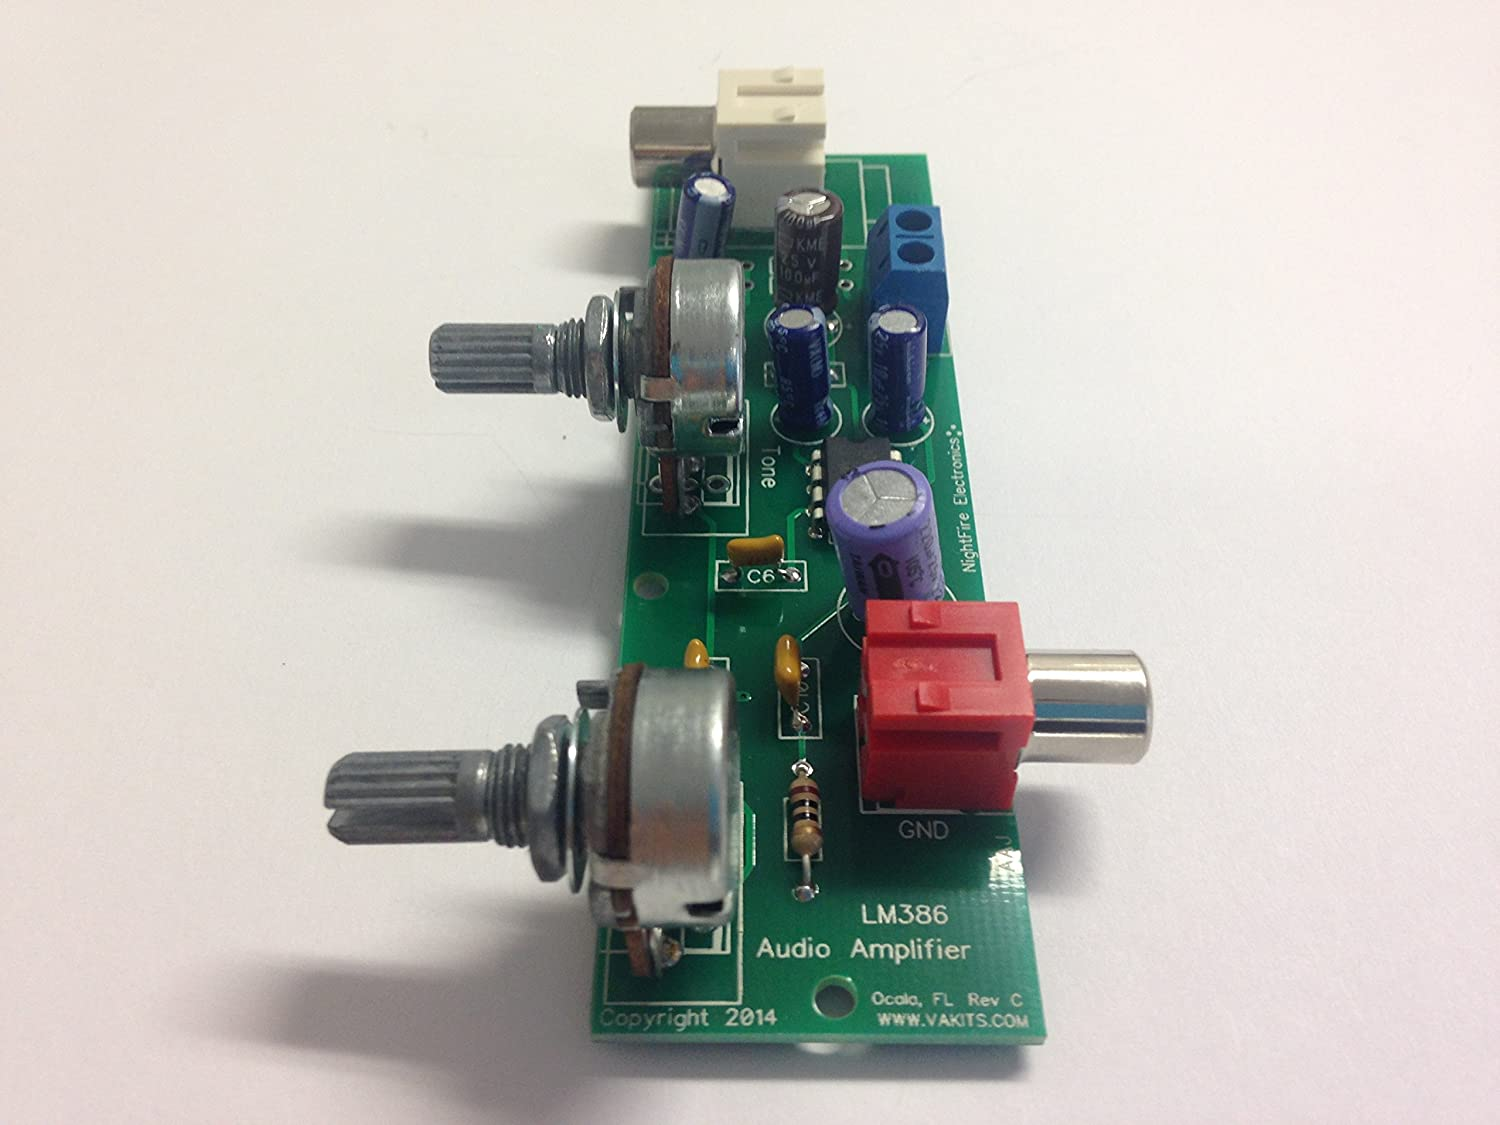 Audio Amplifier Kit With Tone Control Lm386 5328 Audioamp Board The Features A Power Electronics